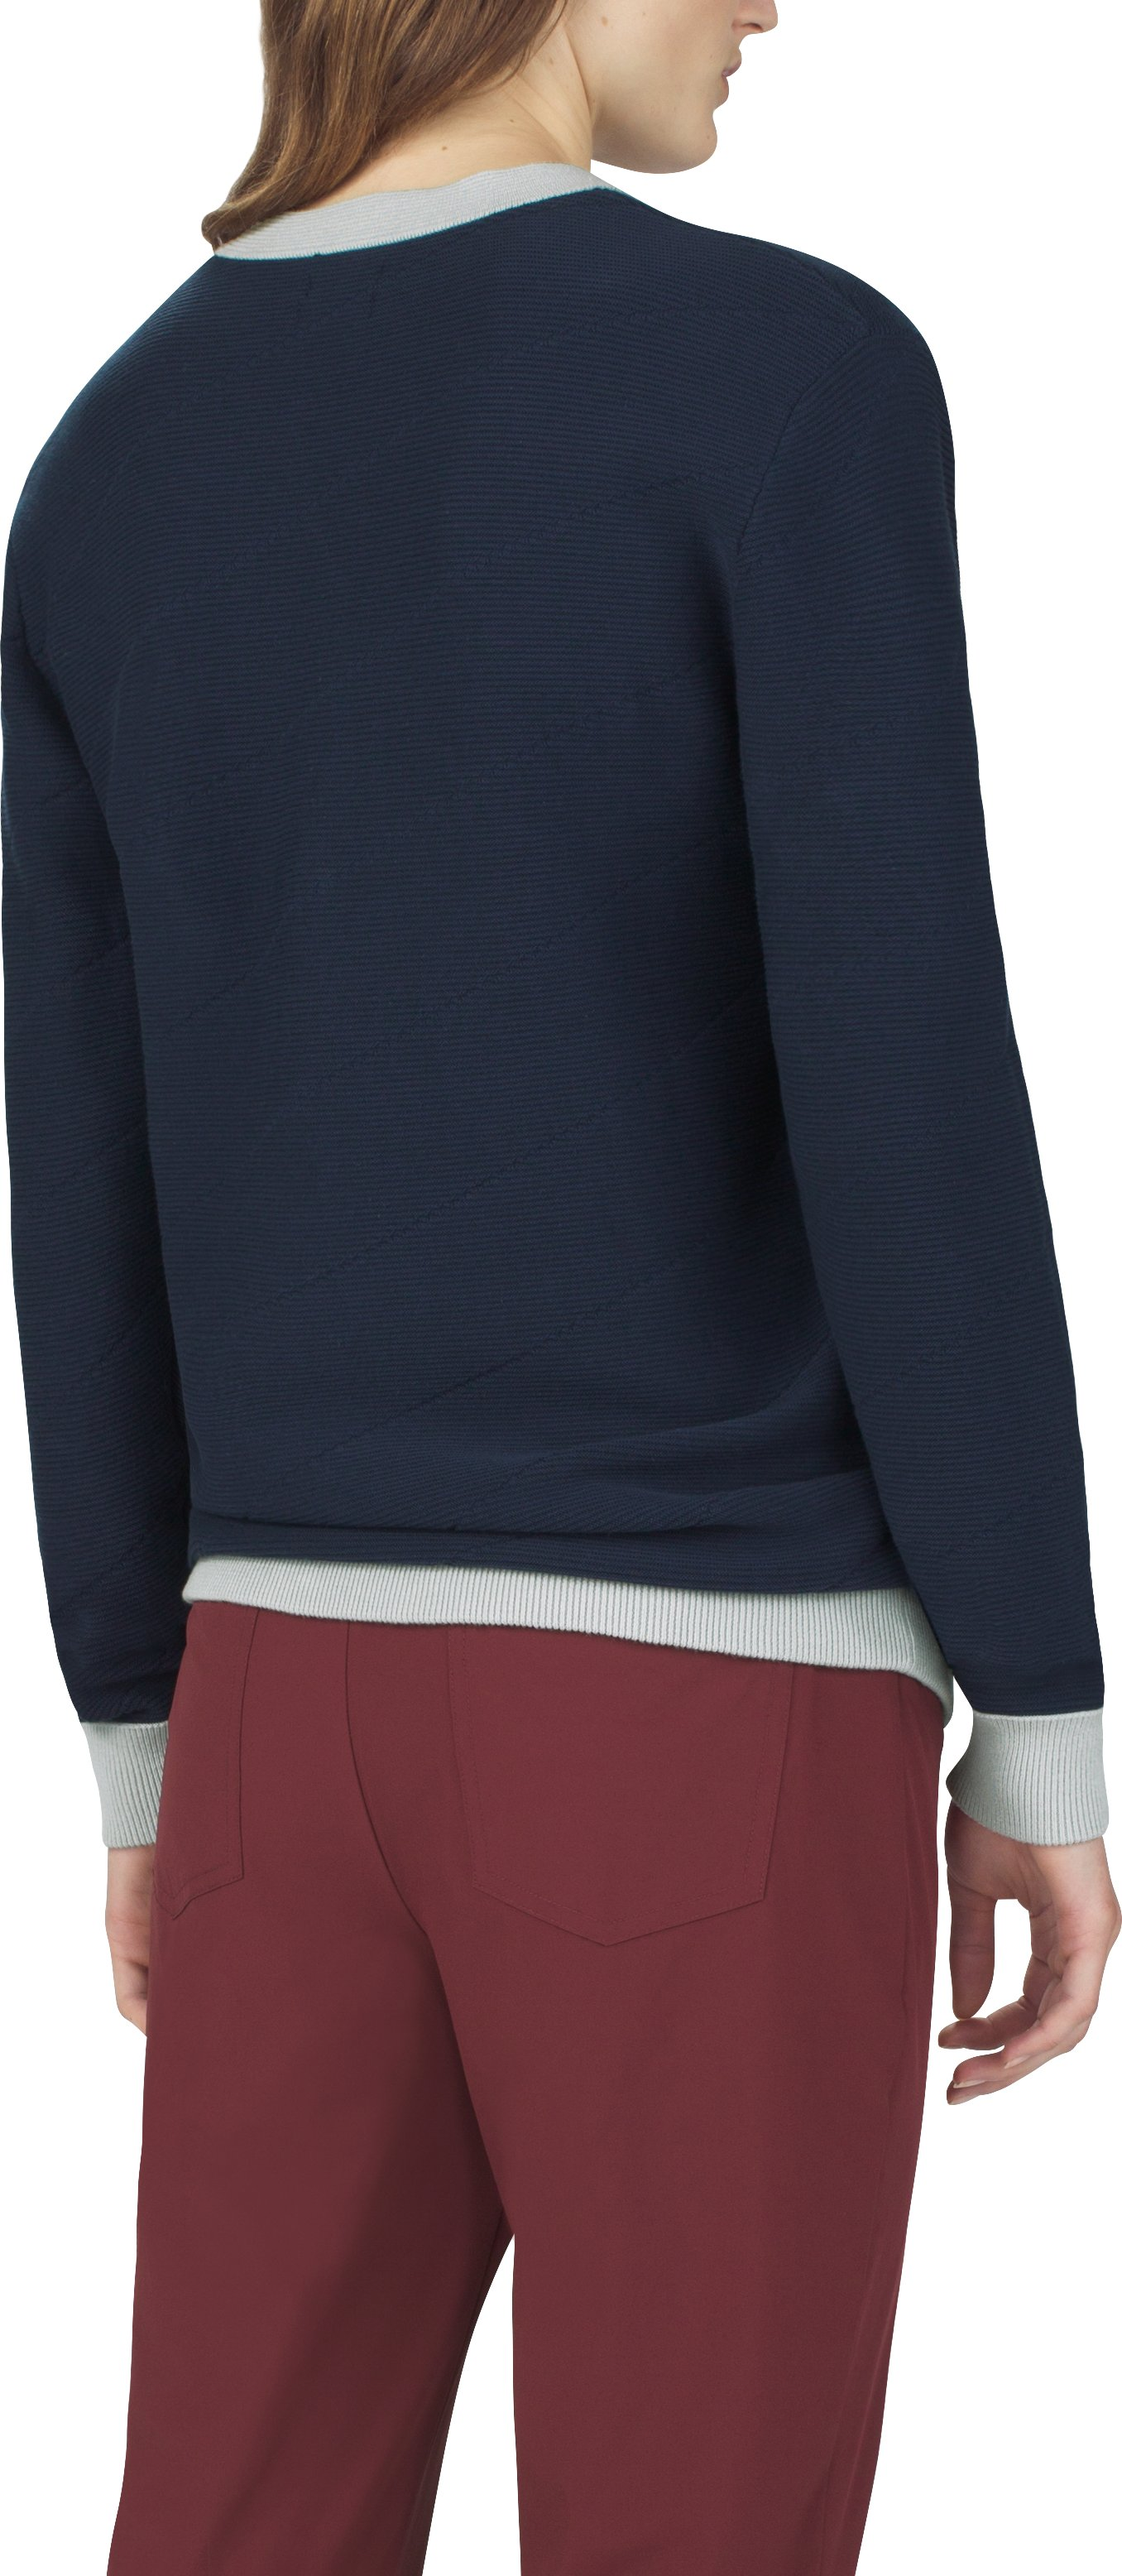 UAS Women's Fieldhouse Crew Sweater, Navy, undefined